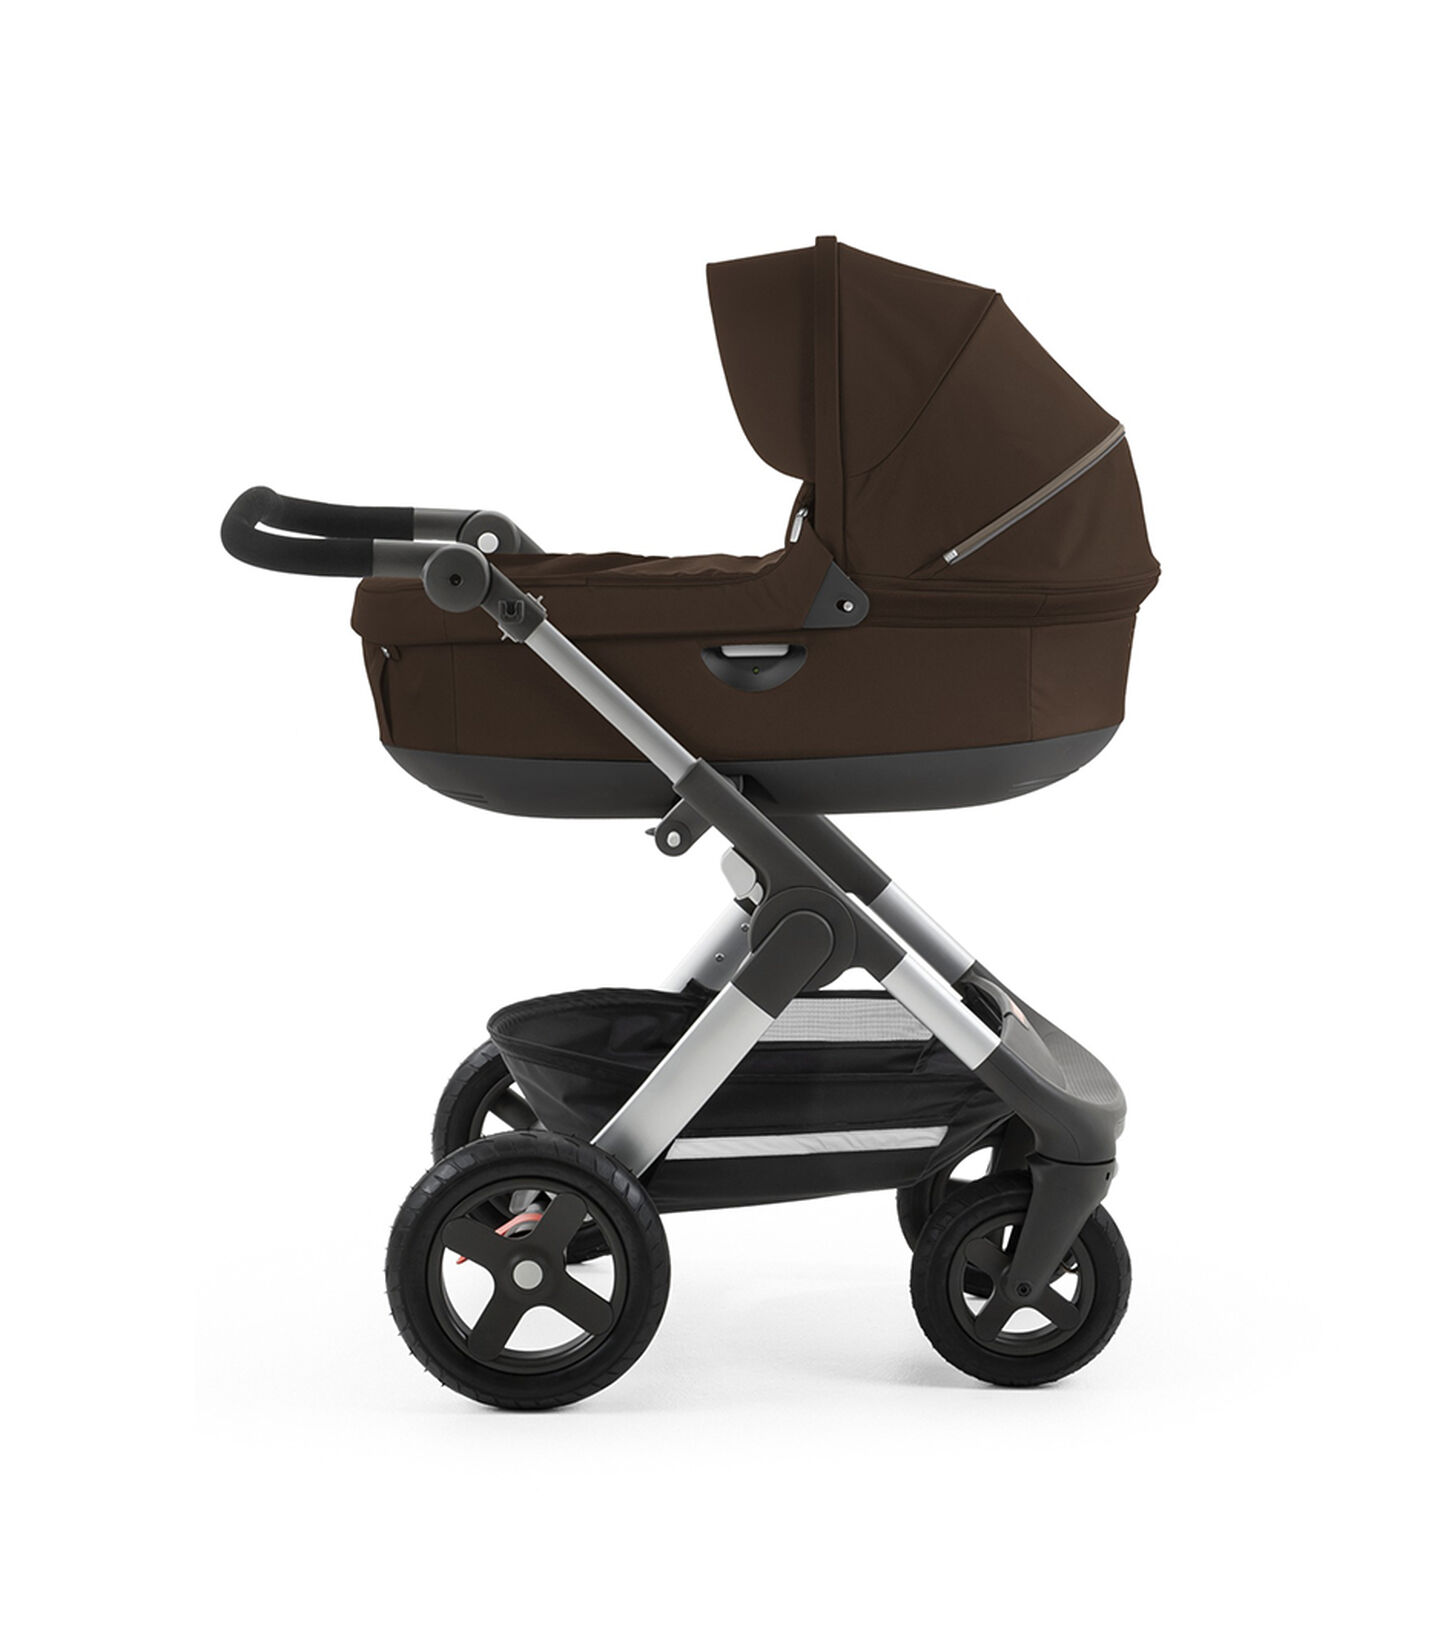 Stokke® Trailz™ Terrain w Carry Cot Brown, Brown, mainview view 2